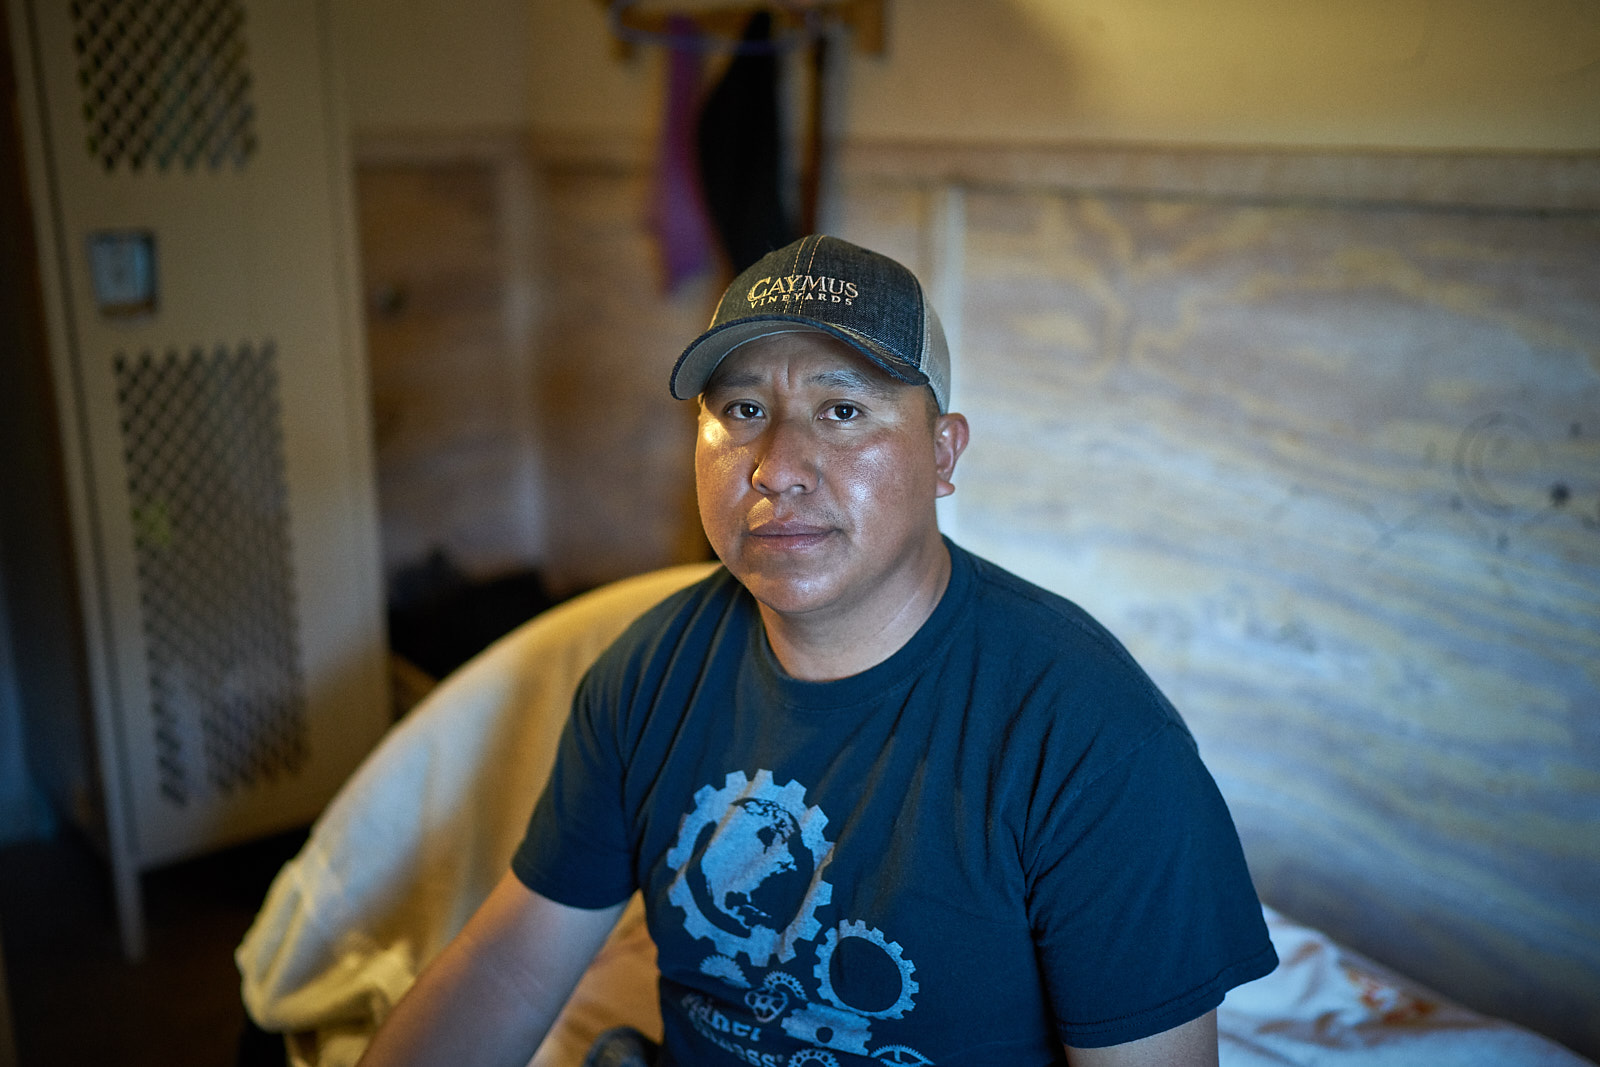 Farmworker in the River Ranch Farm Workers Housing Center